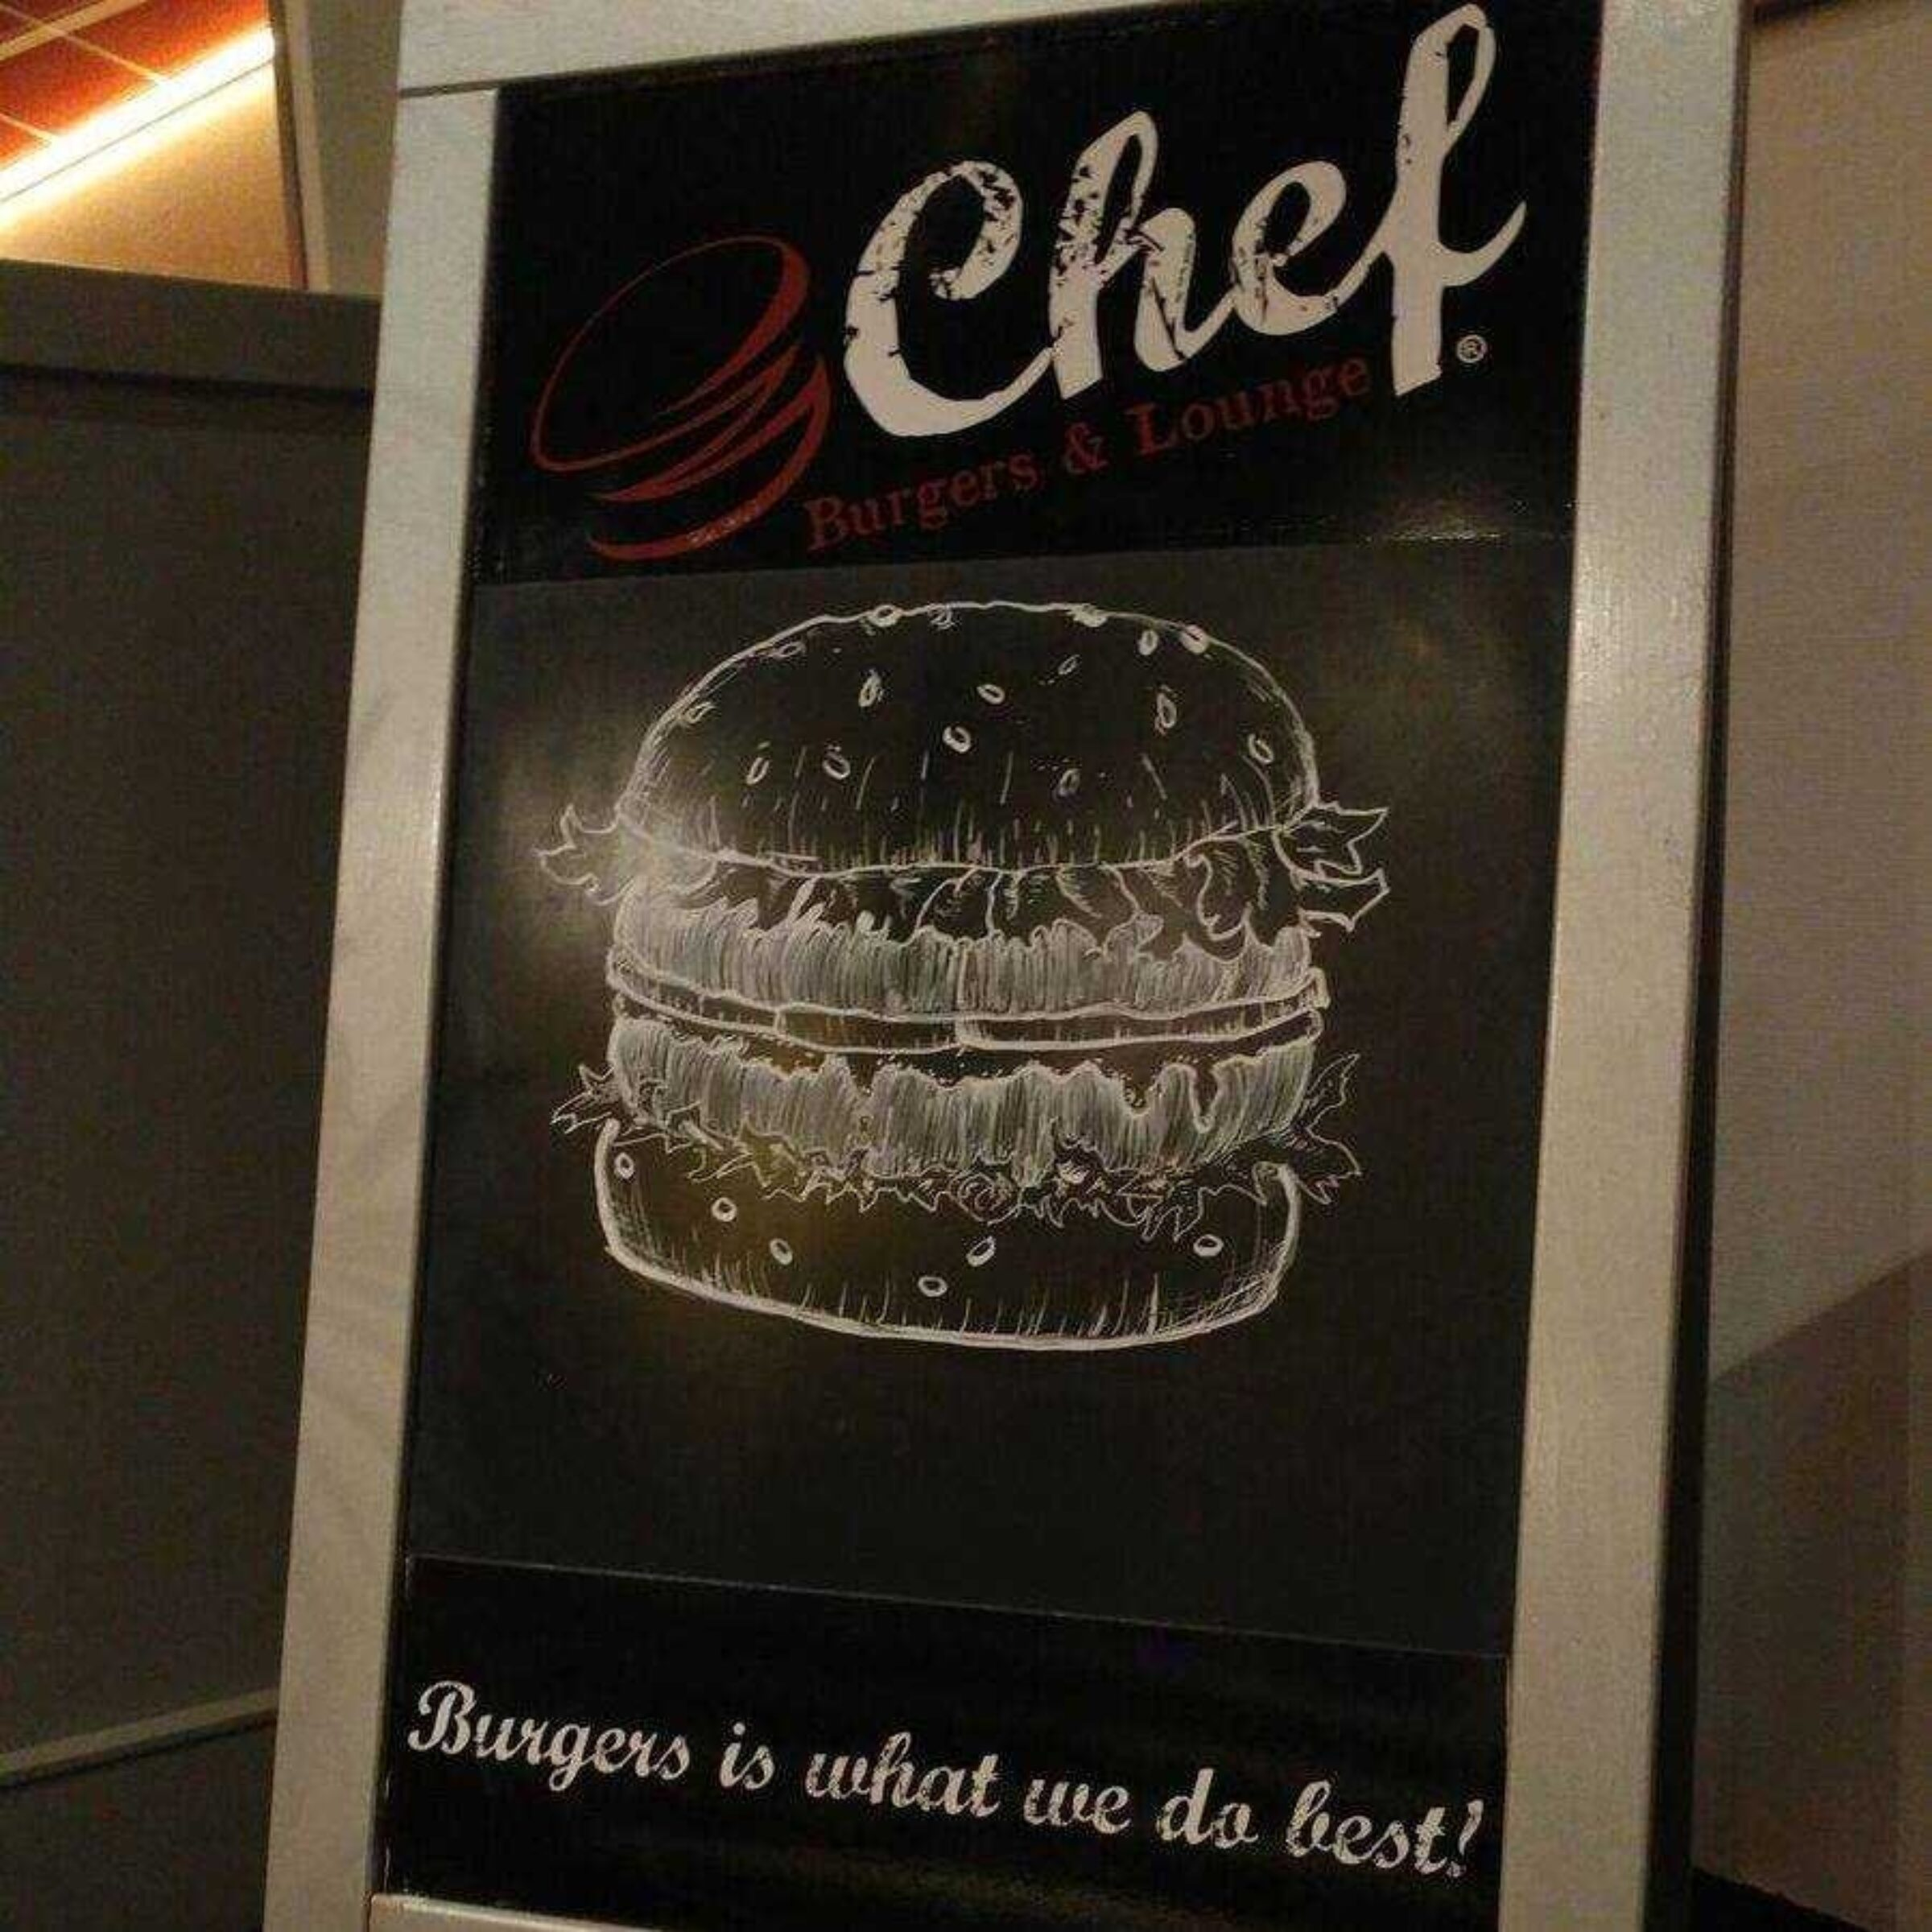 Chef Burgers & Lounge Enschede